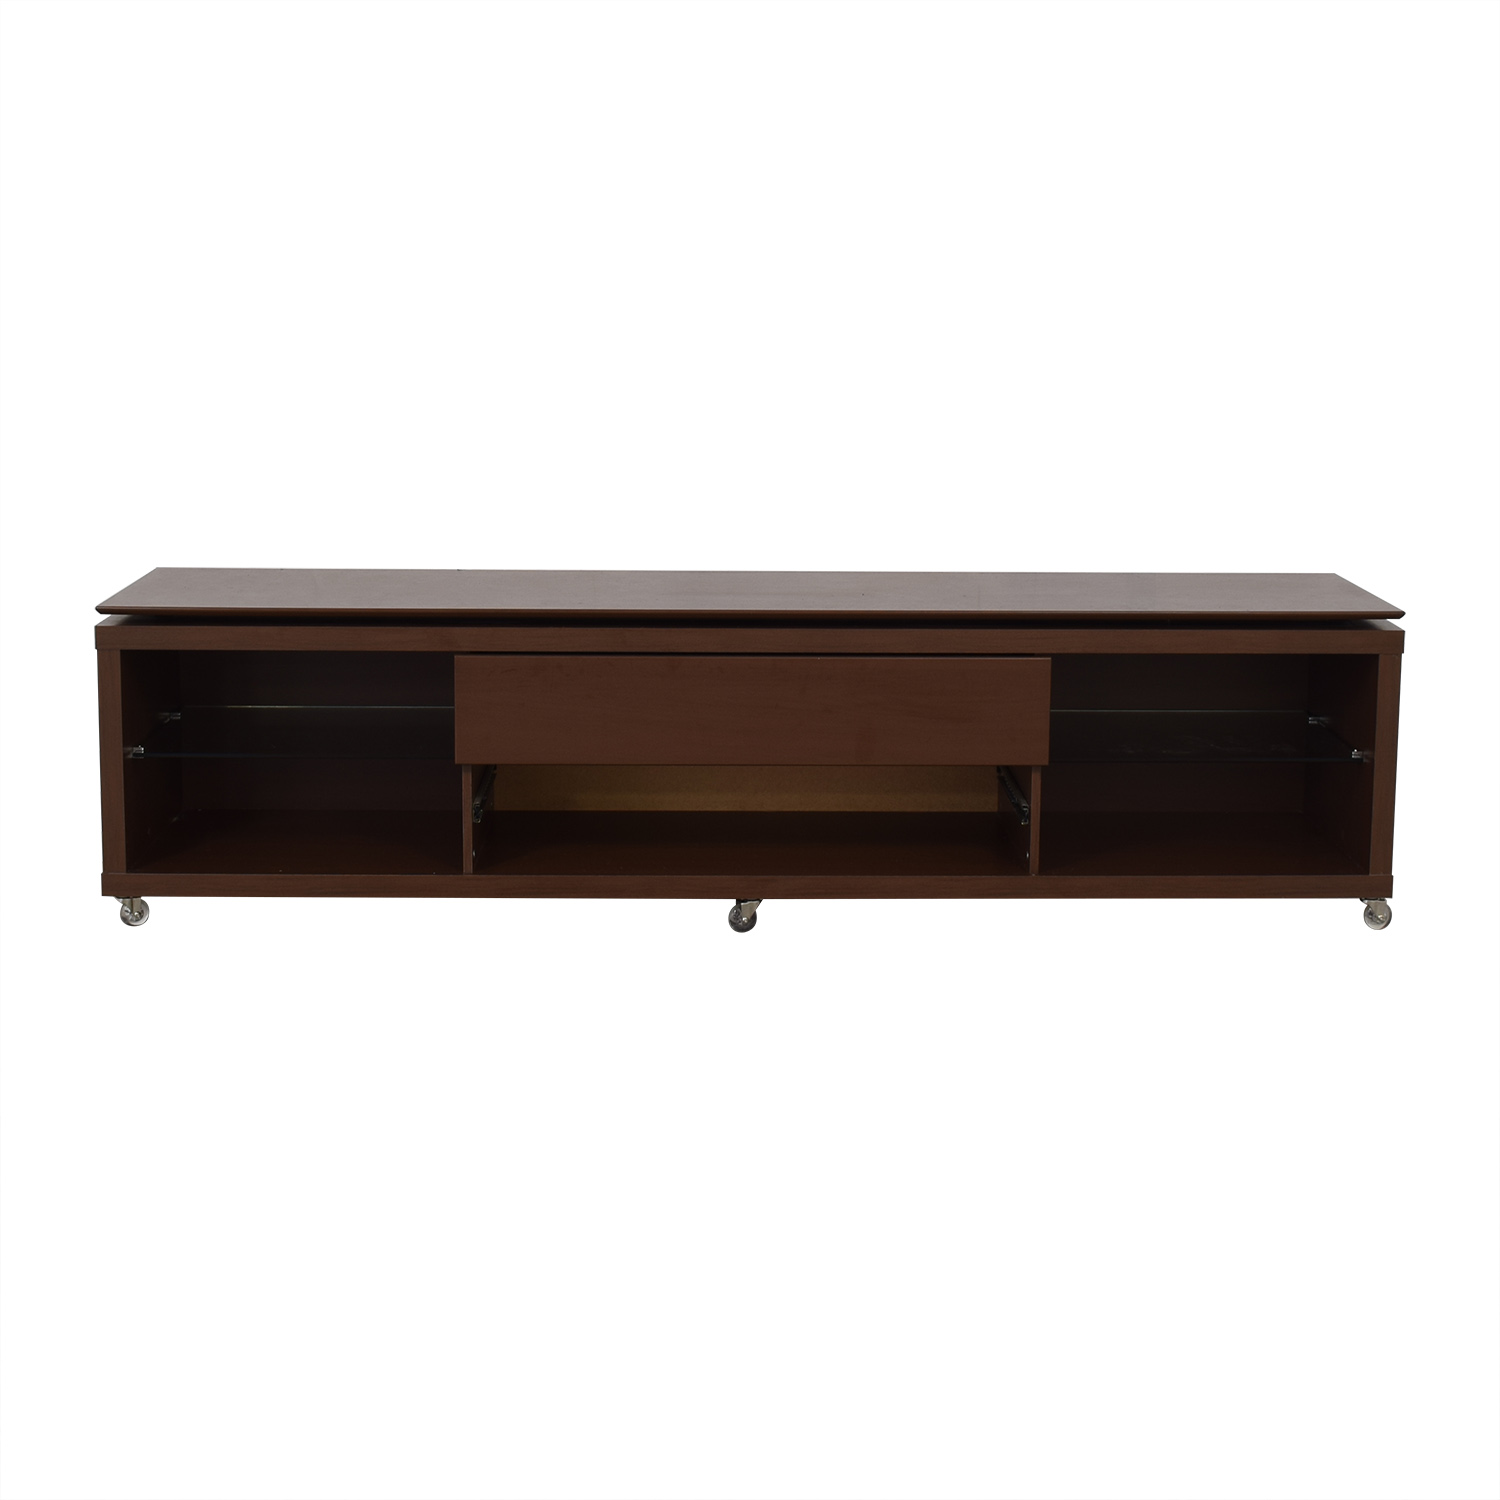 Bed Bath & Beyond Bed Bath & Beyond Manhattan Comfort Lincoln Media Stand Media Units